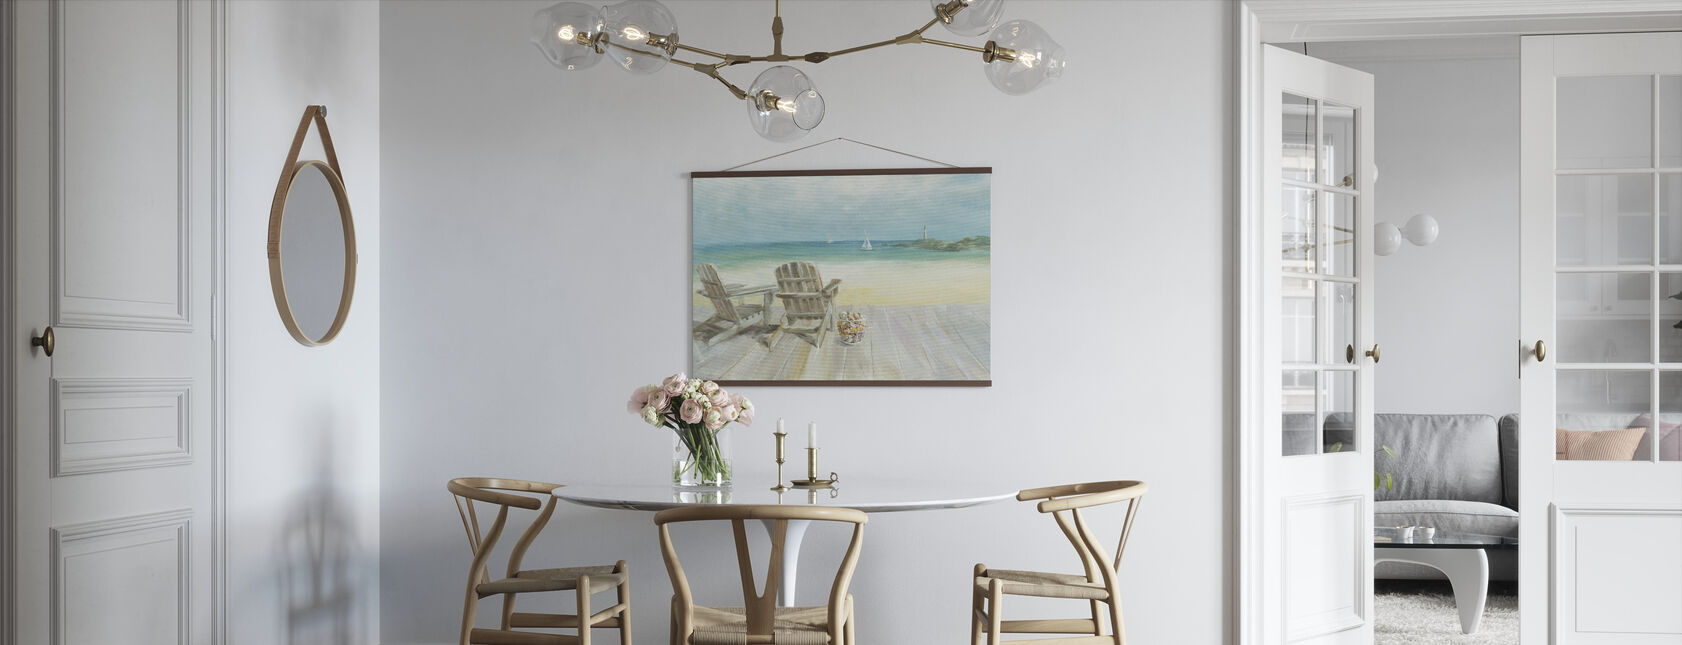 Ocean View - Poster - Kitchen